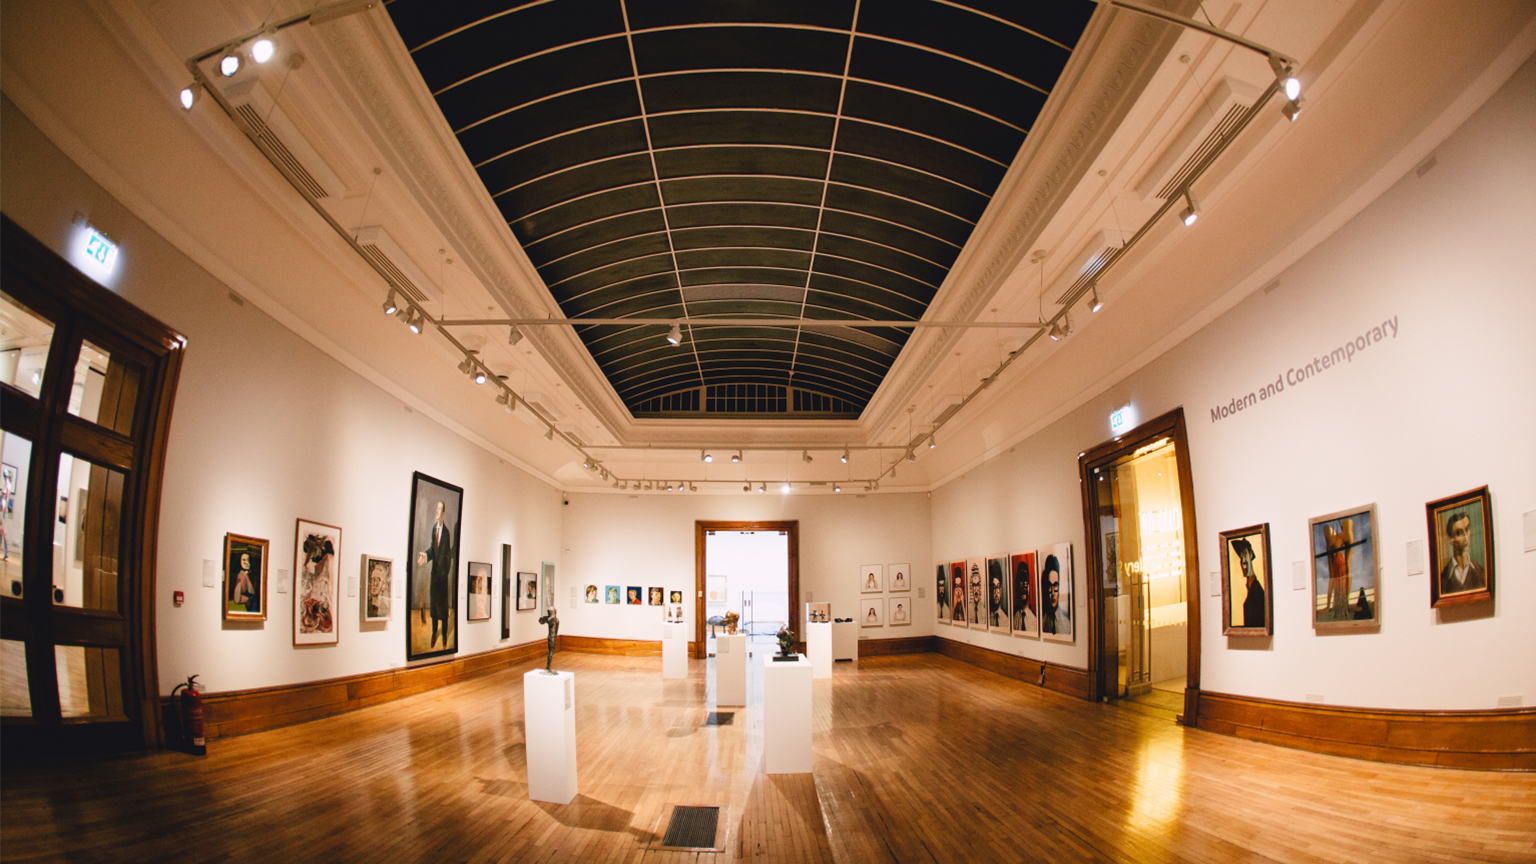 Modern and Contemporary Gallery, Ferens Art Gallery